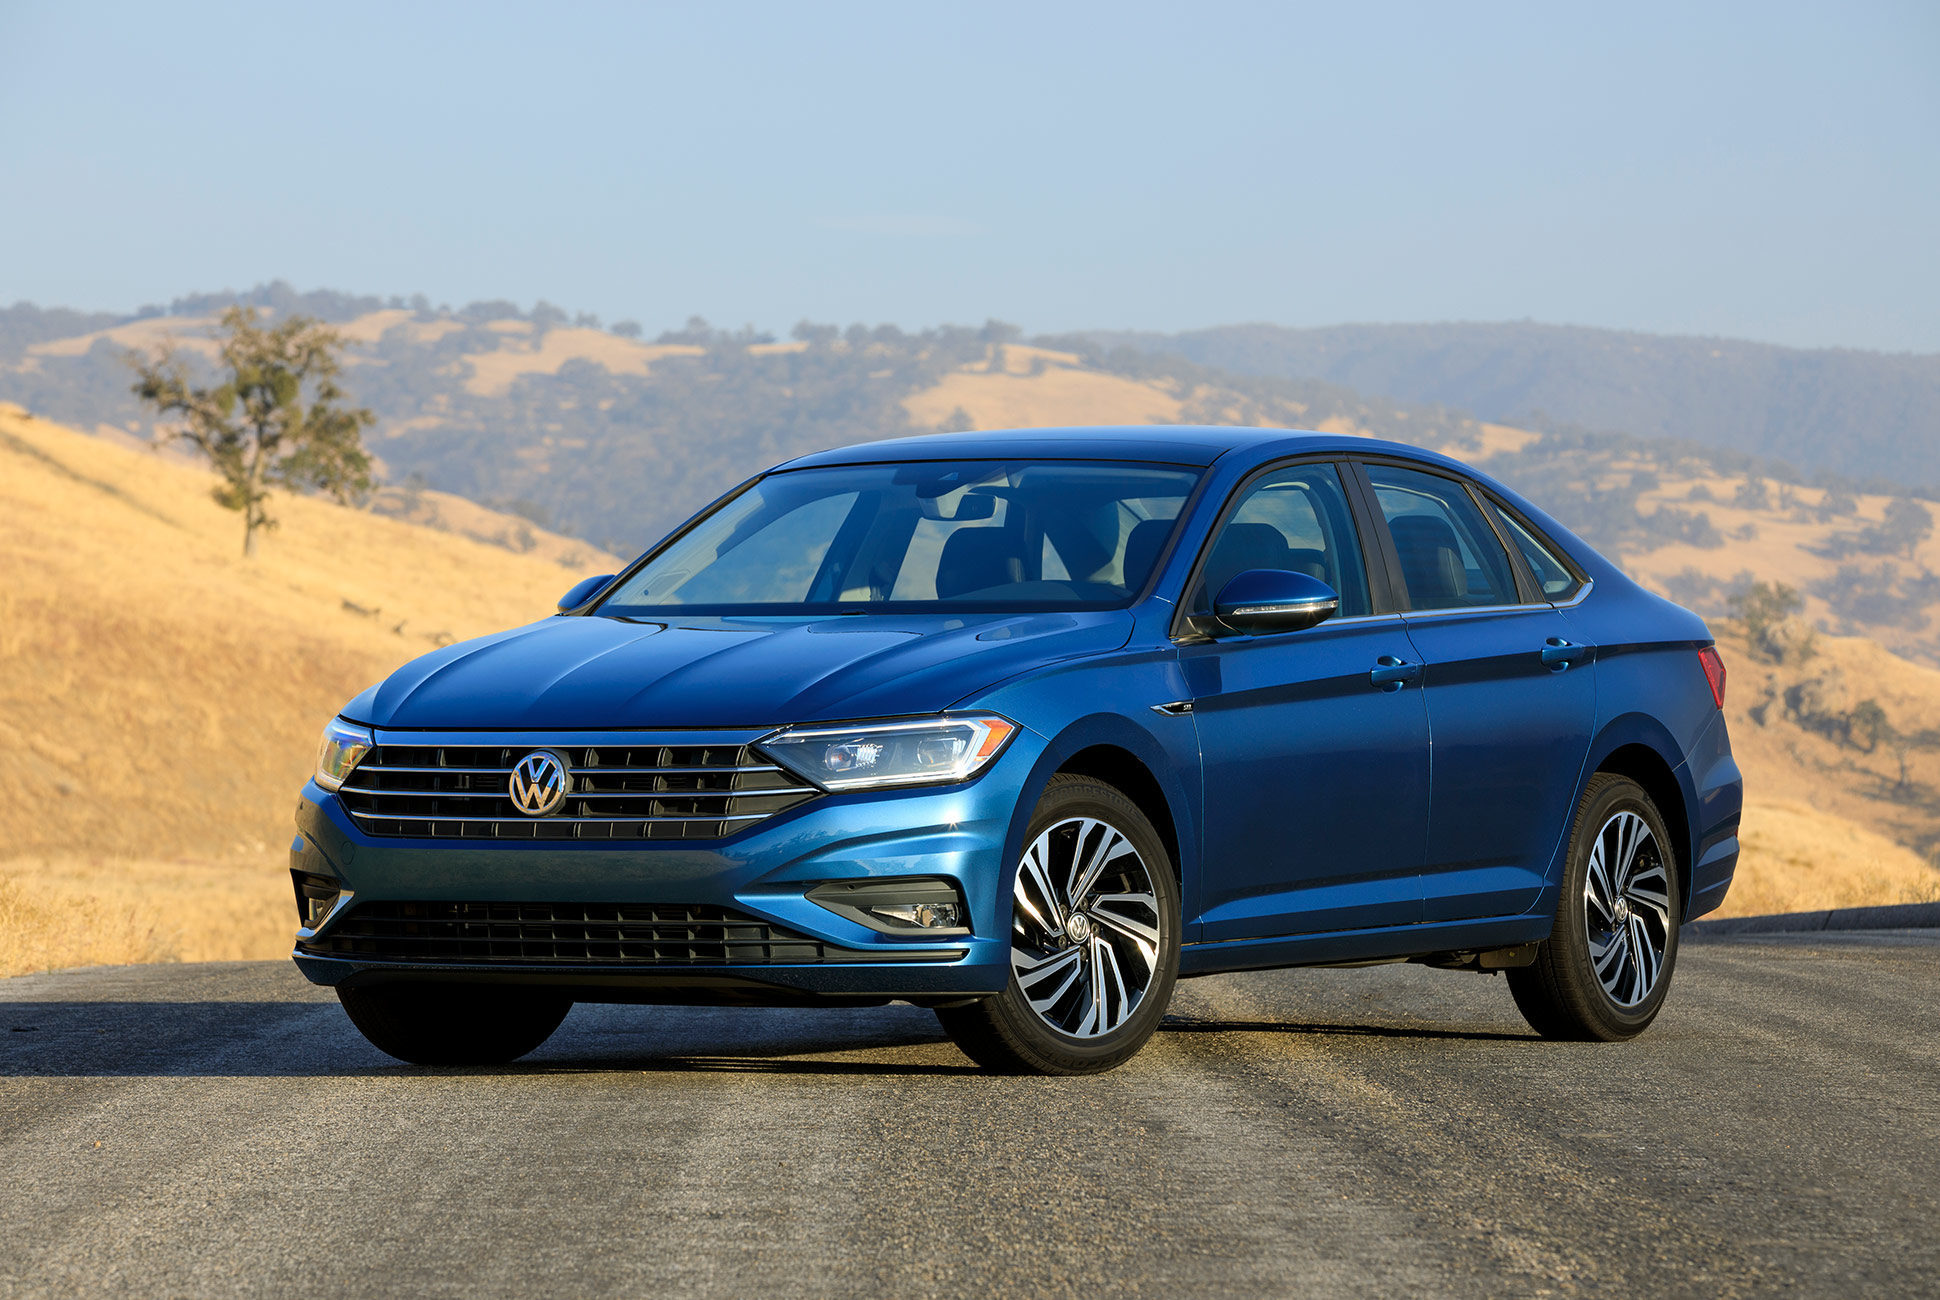 The 2019 Jetta also comes with a 1.4-L turbocharged gasoline engine.